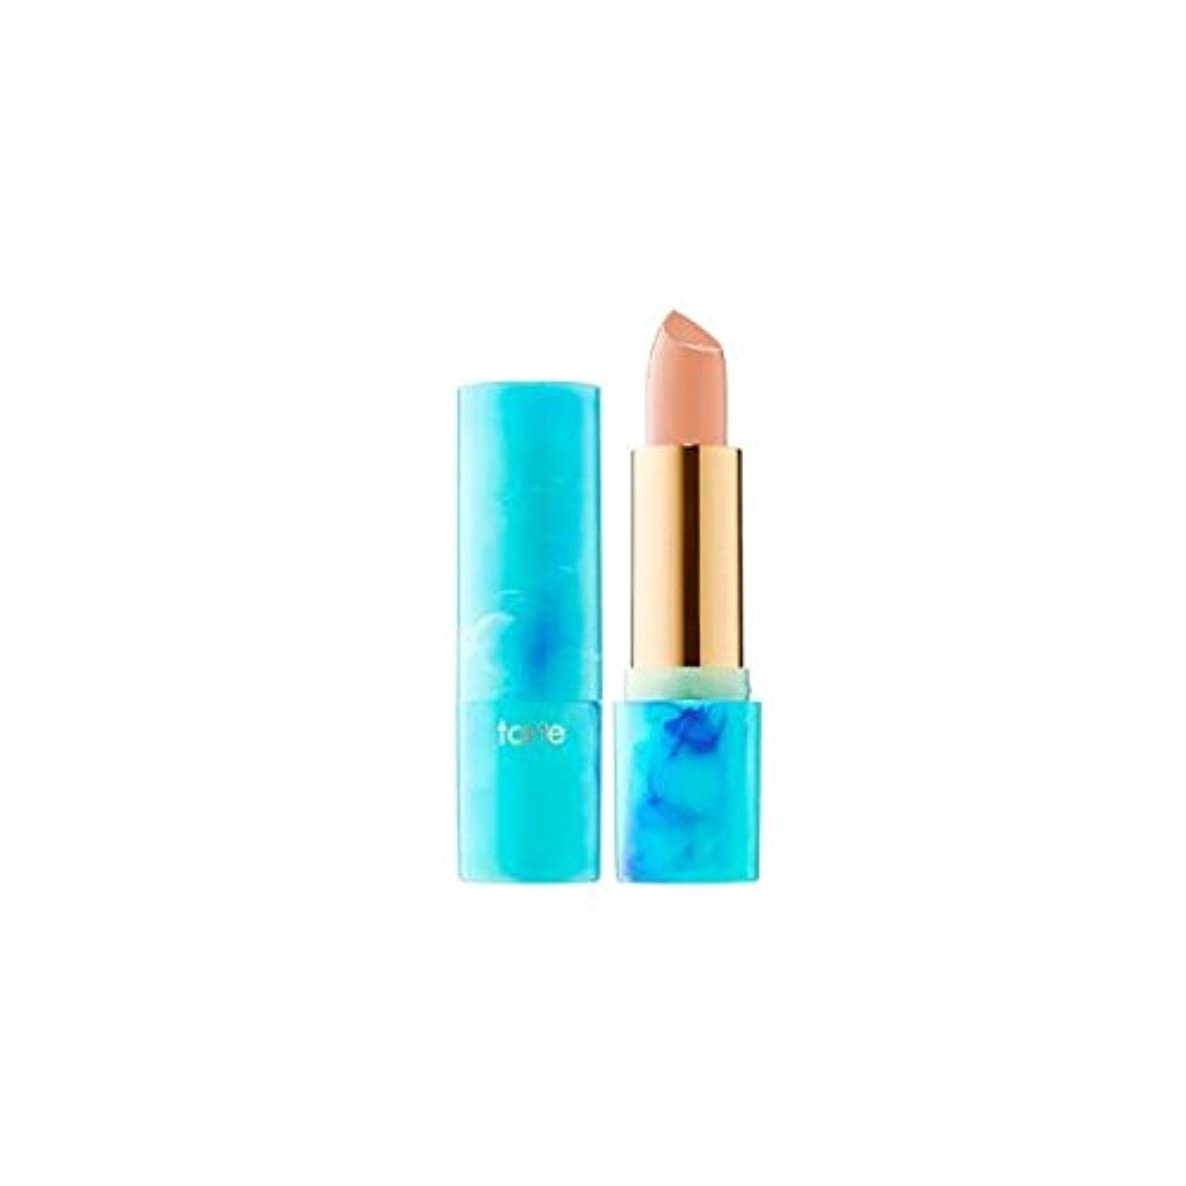 トレード物足りないミッションtarteタルト リップ Color Splash Lipstick - Rainforest of the Sea Collection Satin finish